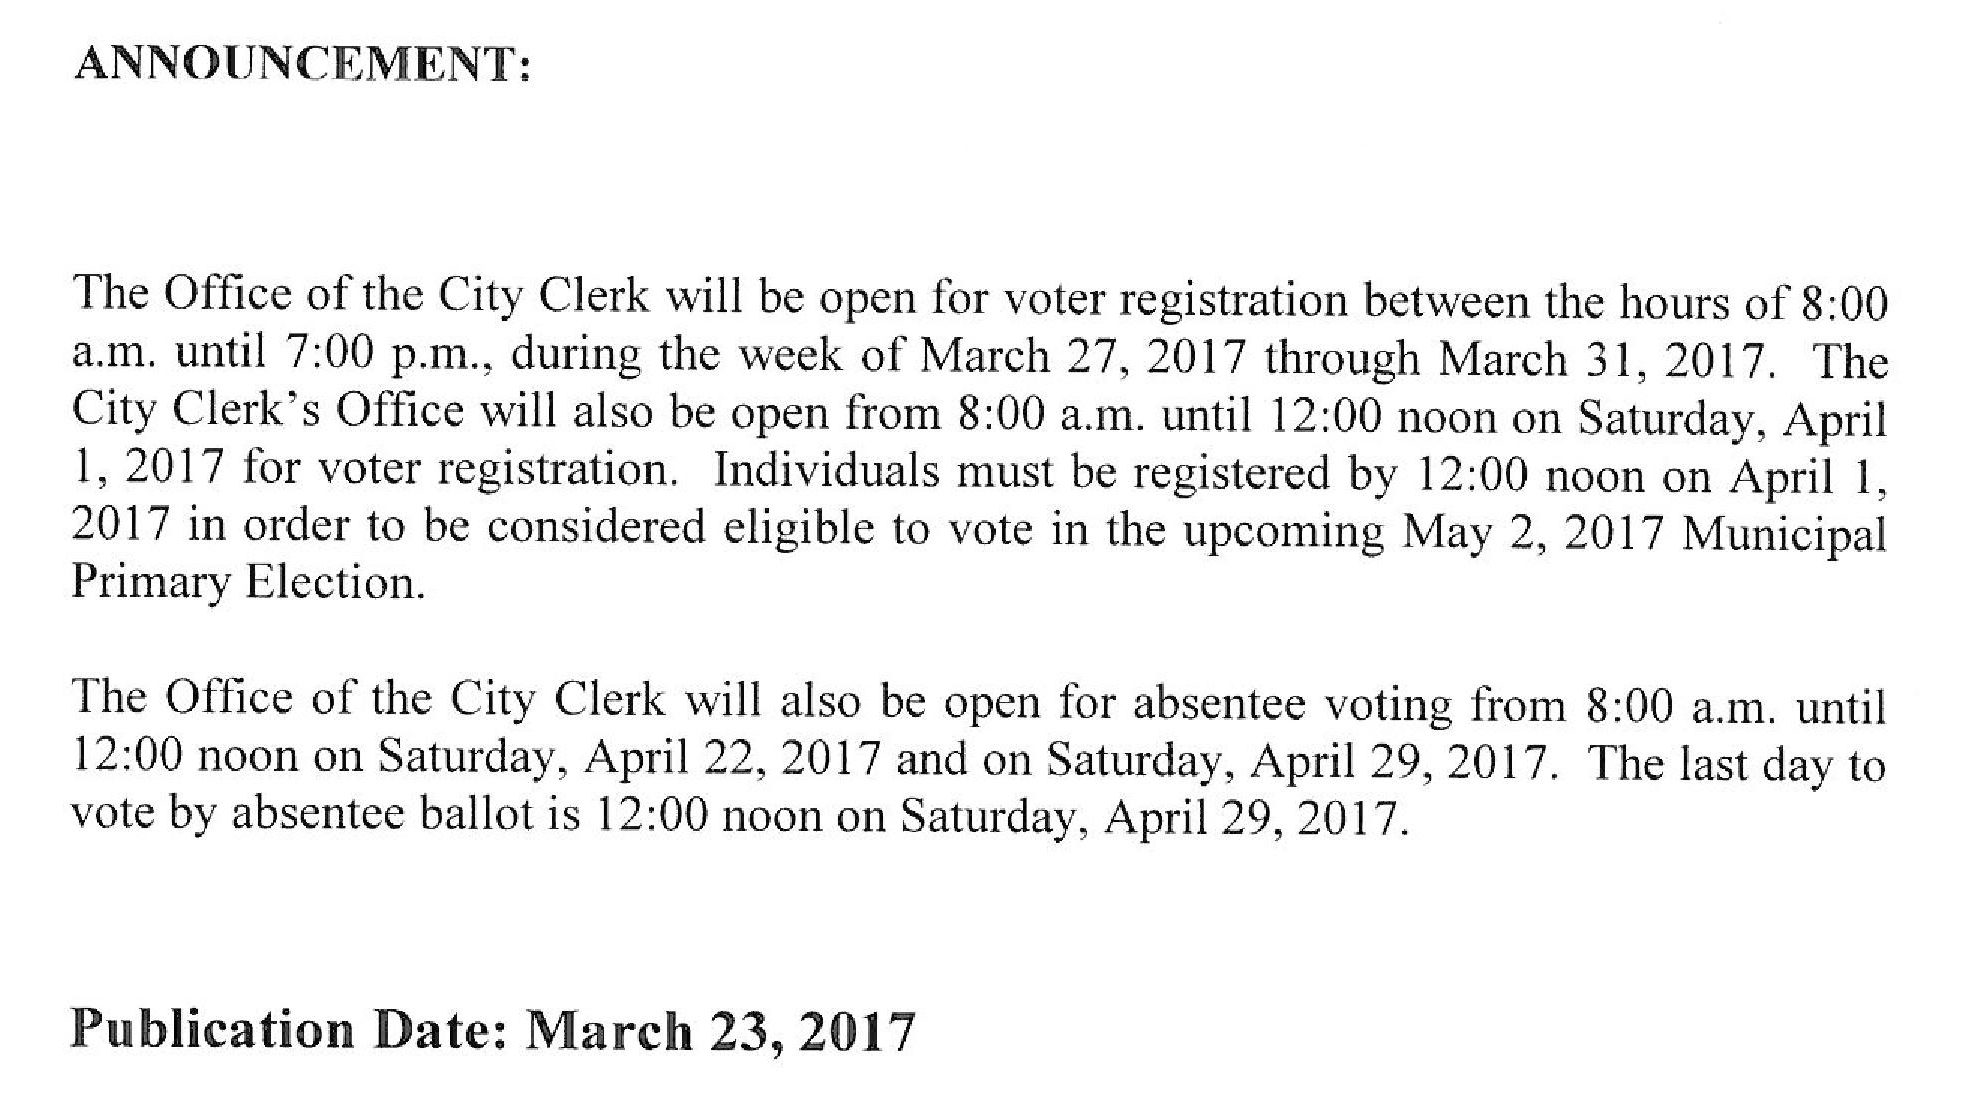 Hours for voter registration at Office of City Clerk from March 27th through April 1st